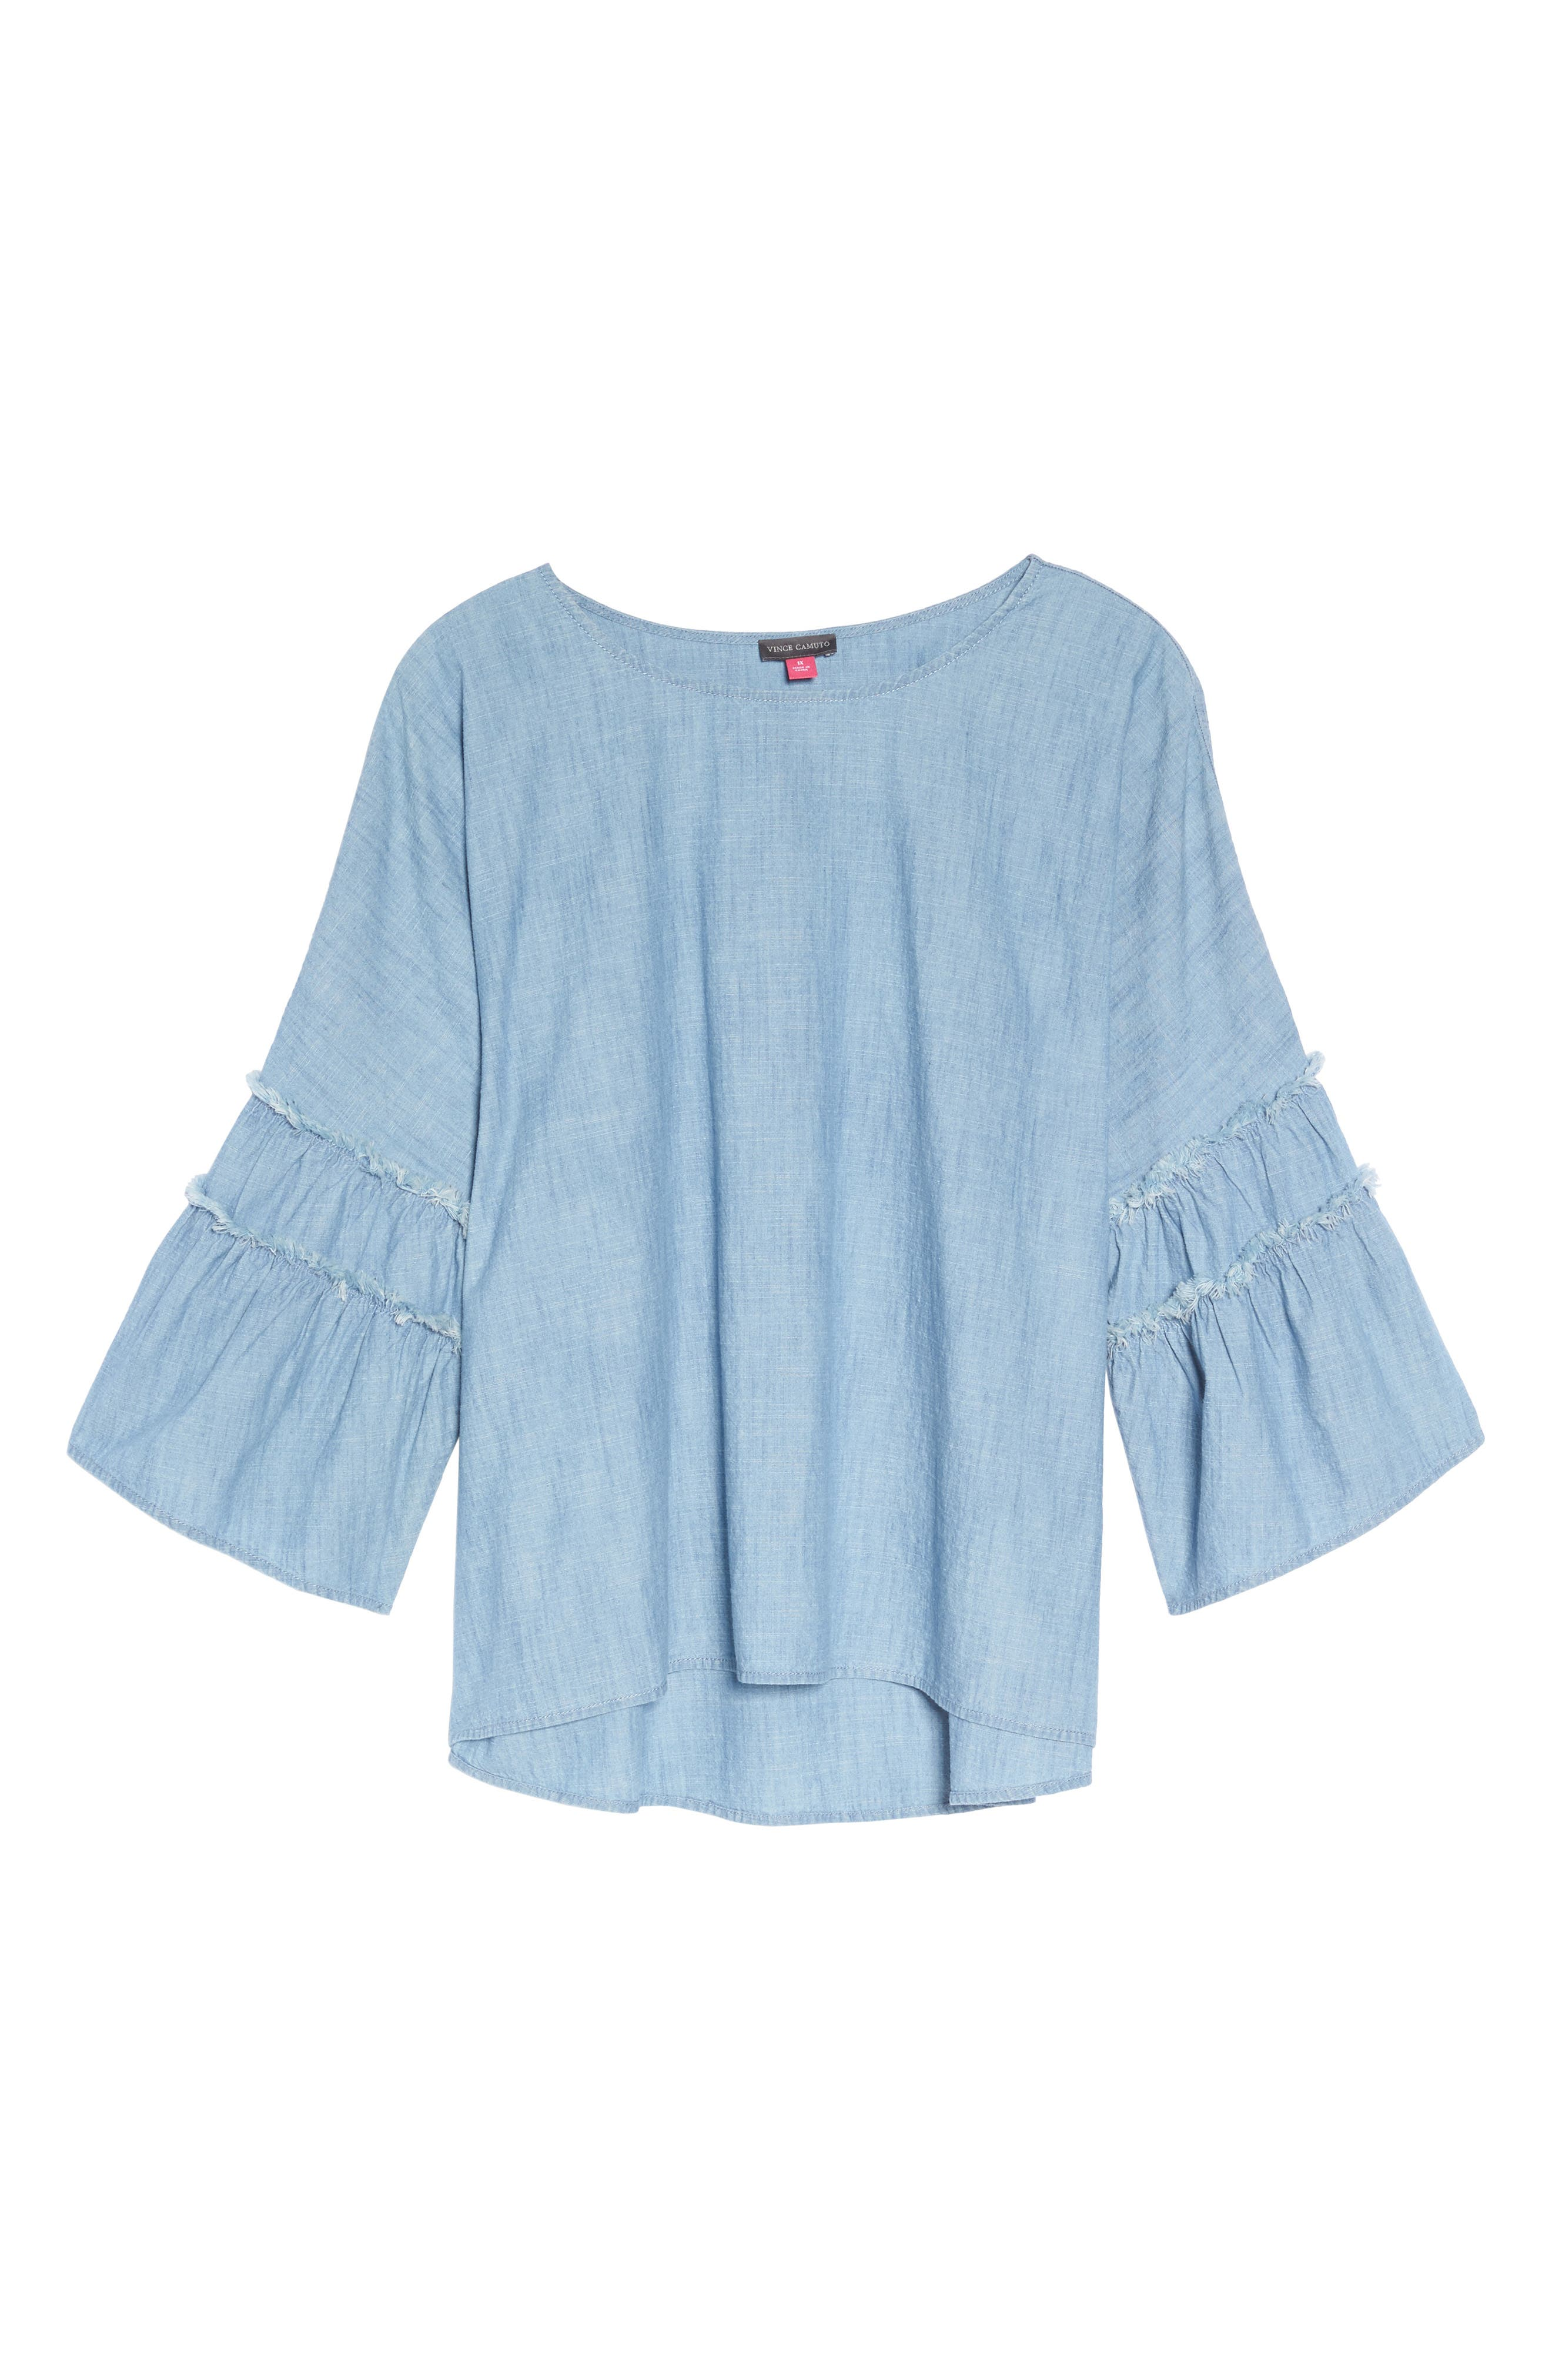 Ruffle Sleeve Chambray Blouse,                             Alternate thumbnail 6, color,                             ICE LAGOON